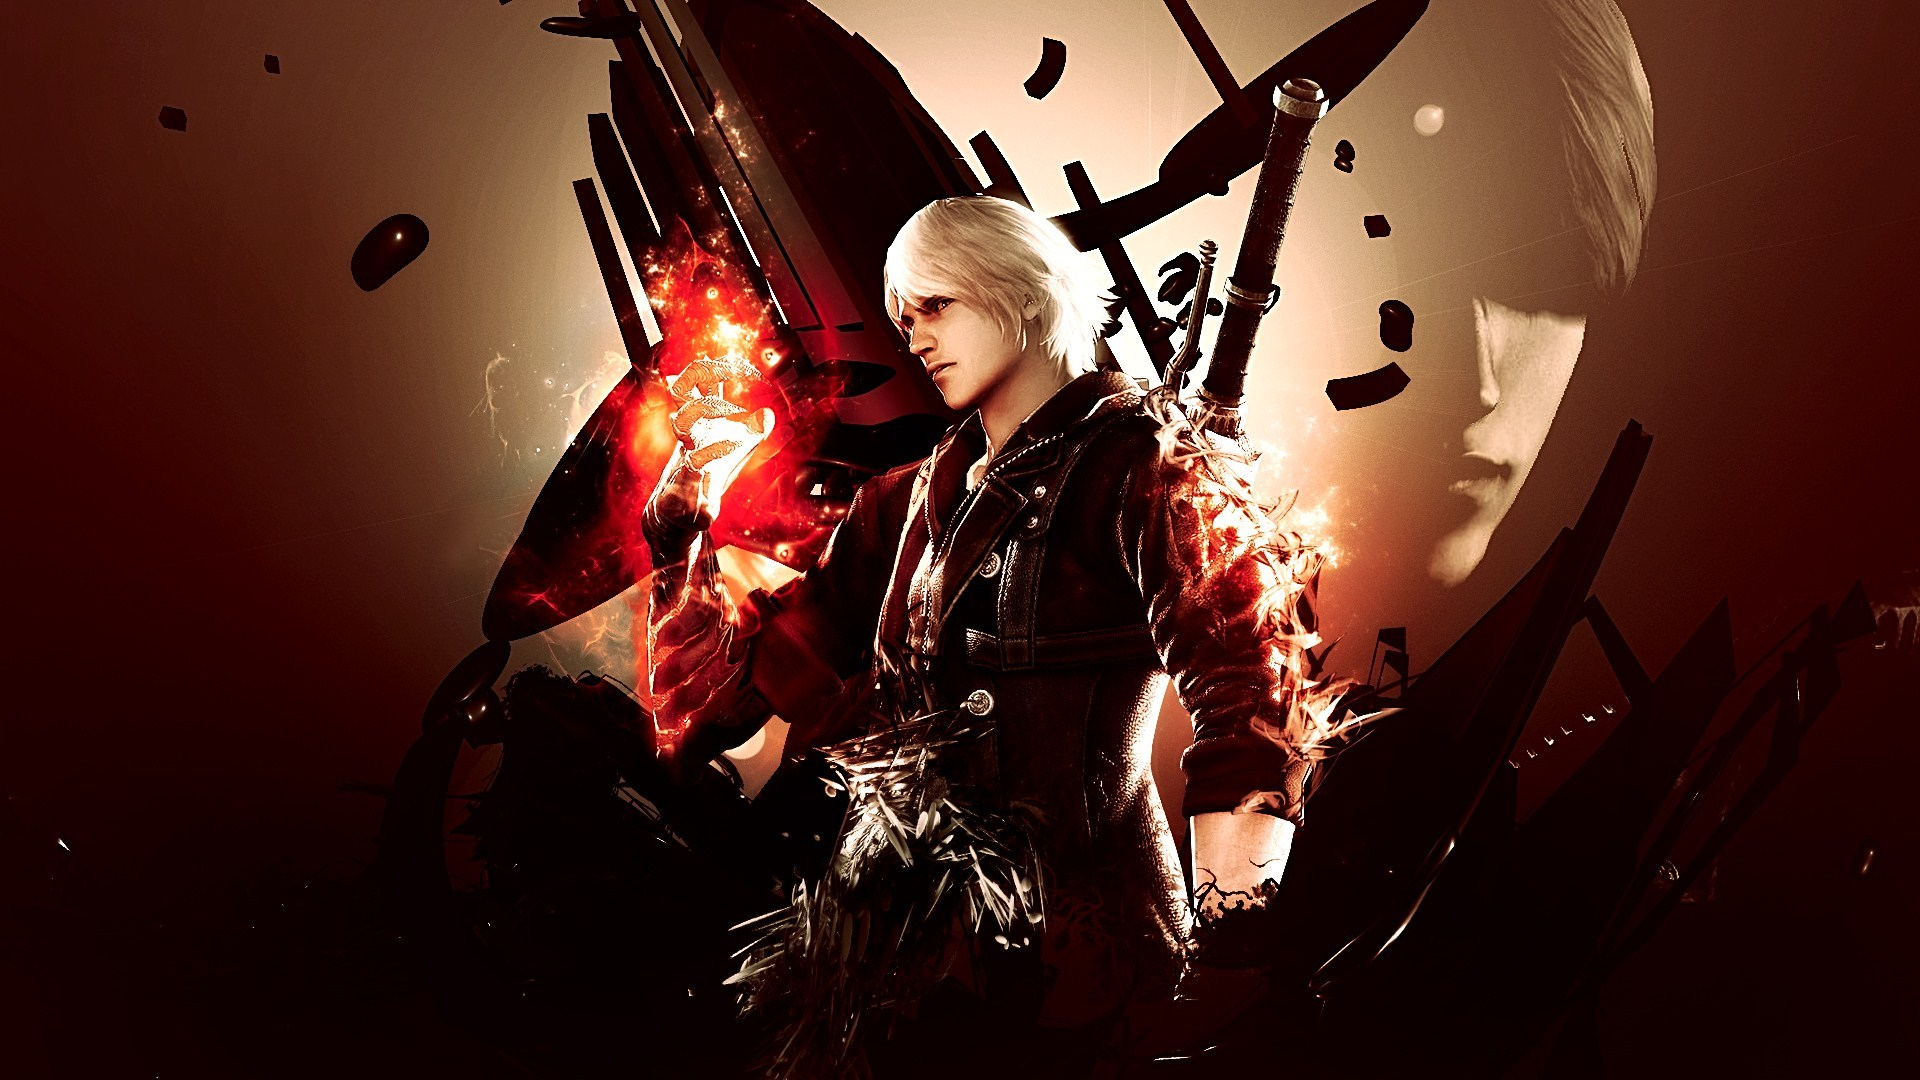 devil may cry 5 wallpaper fondos de pantalla devil may